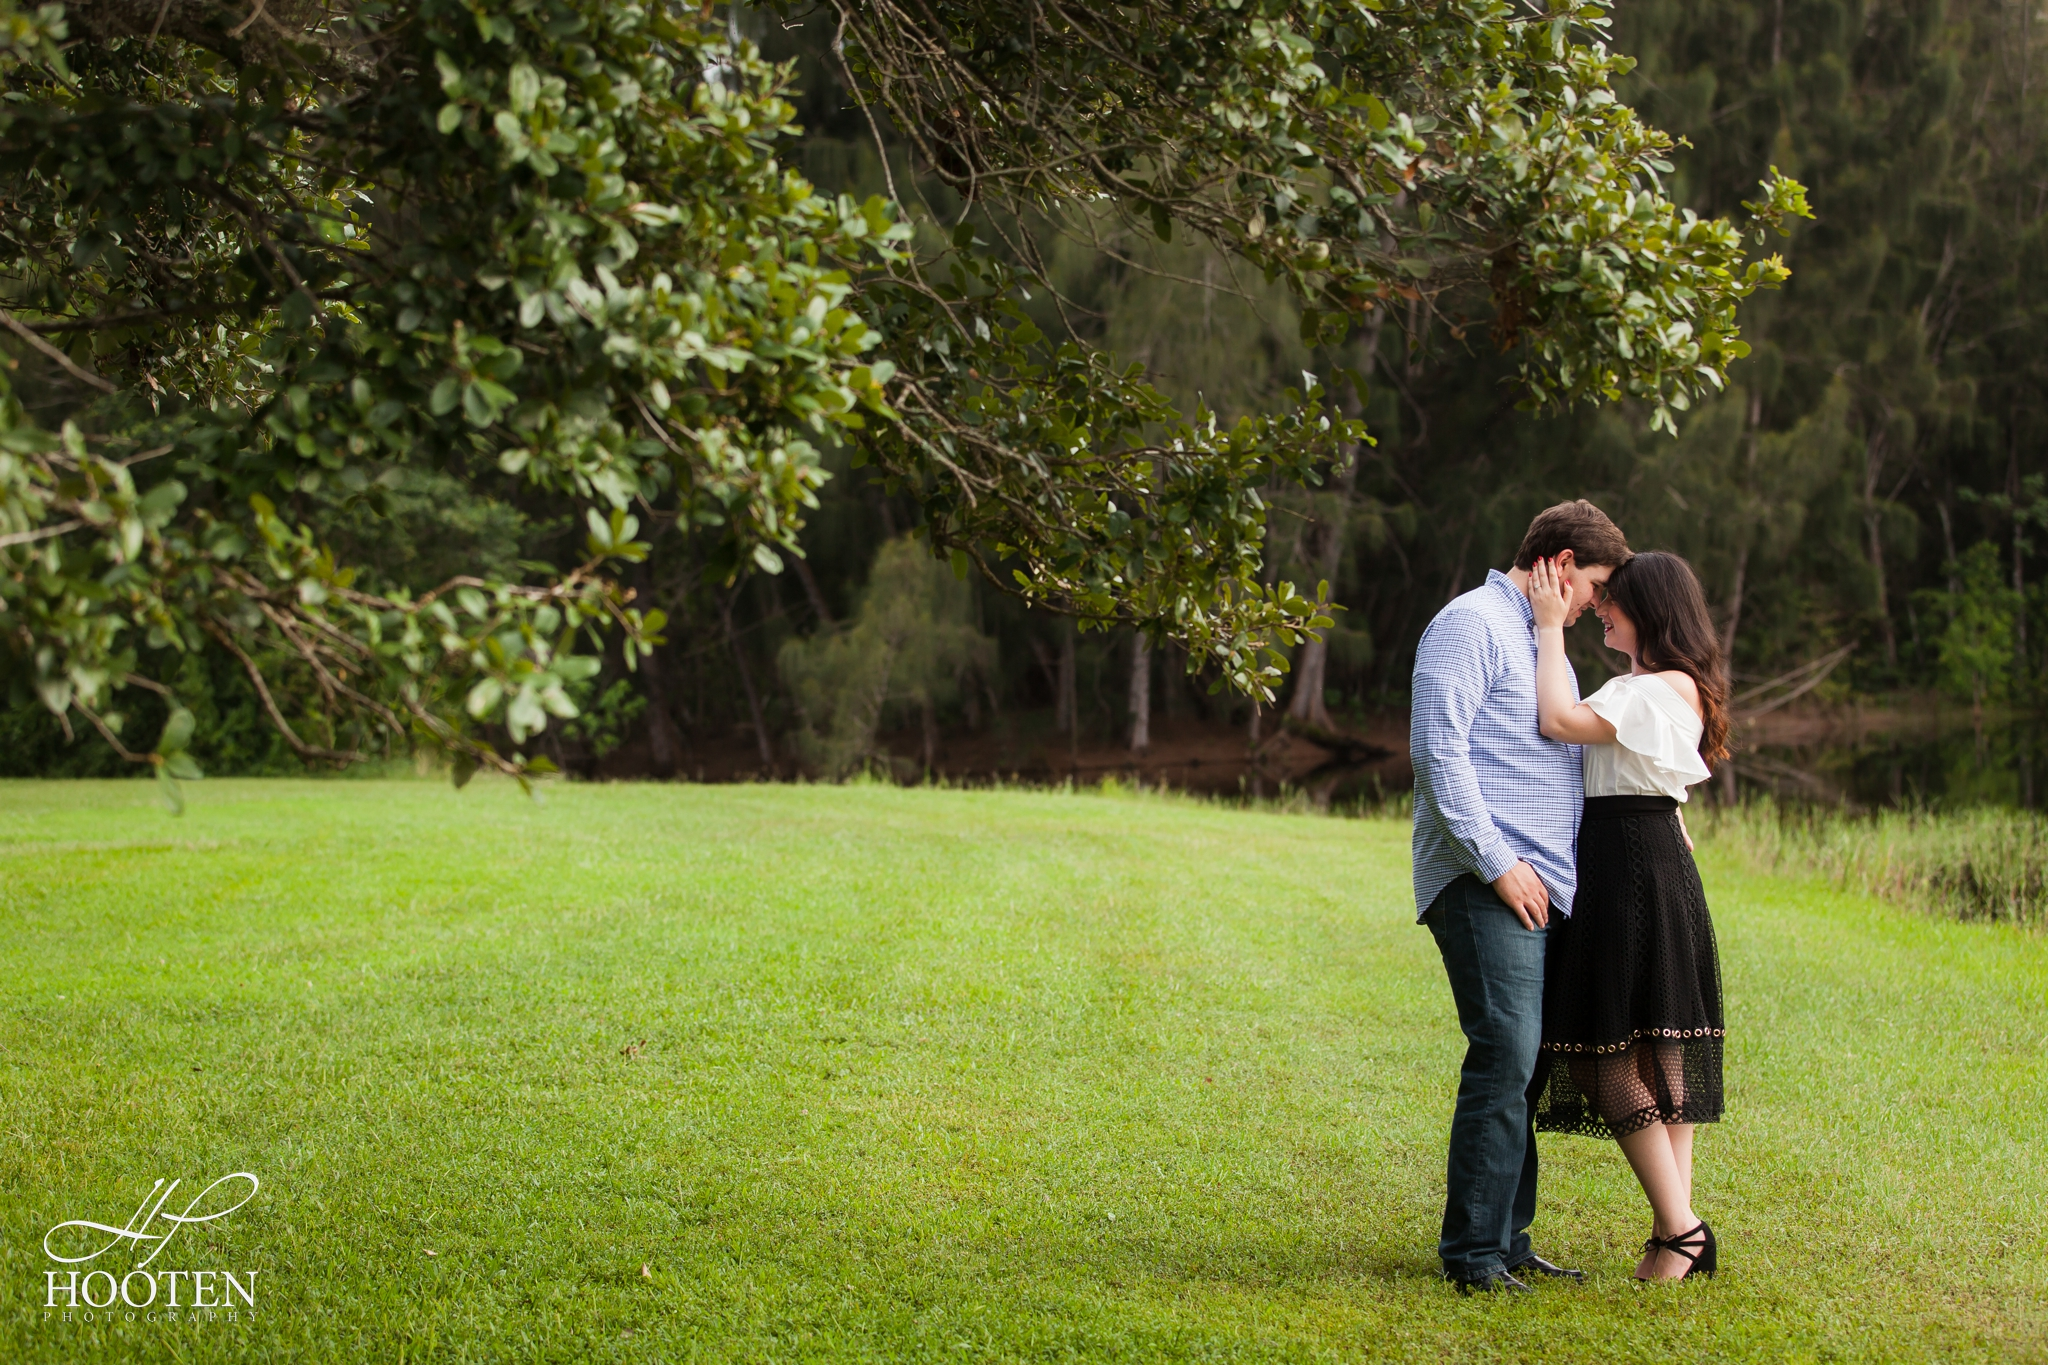 Tree-Tops-Park-Engagement-Session-Hooten Photography-7819.jpg